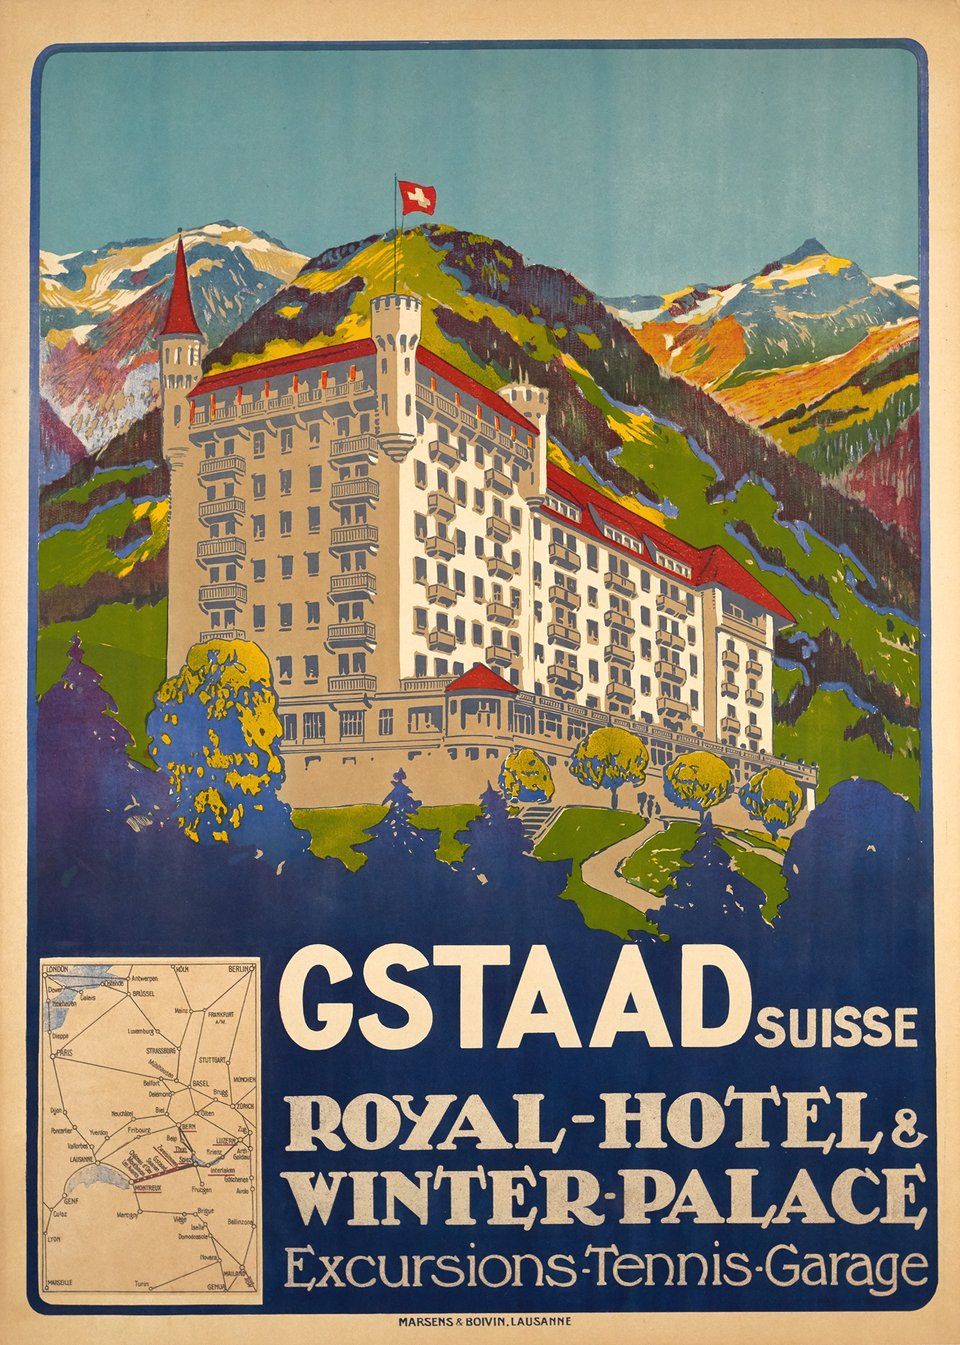 Gstaad Suisse - Royal-Hôtel & Winter Palace, Excursion-Tennis-Garage – Affiche ancienne – Carlo PELLEGRINI – 1913